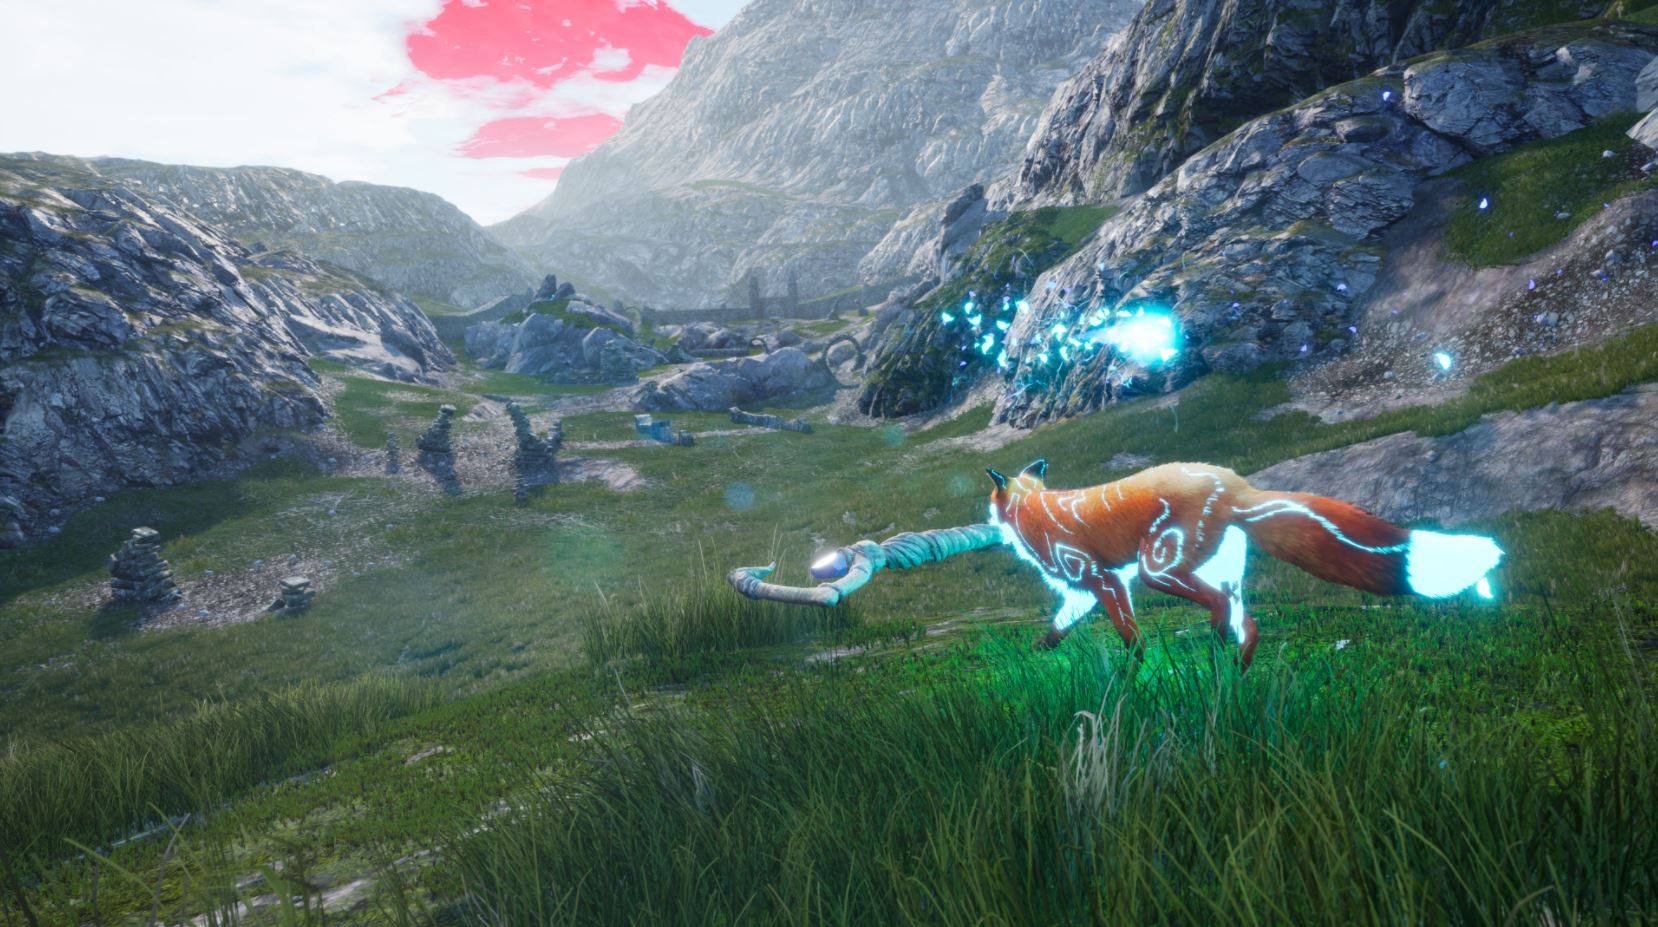 spirit-of-the-north-enhanced-edition-floats-onto-ps5-in-late-november